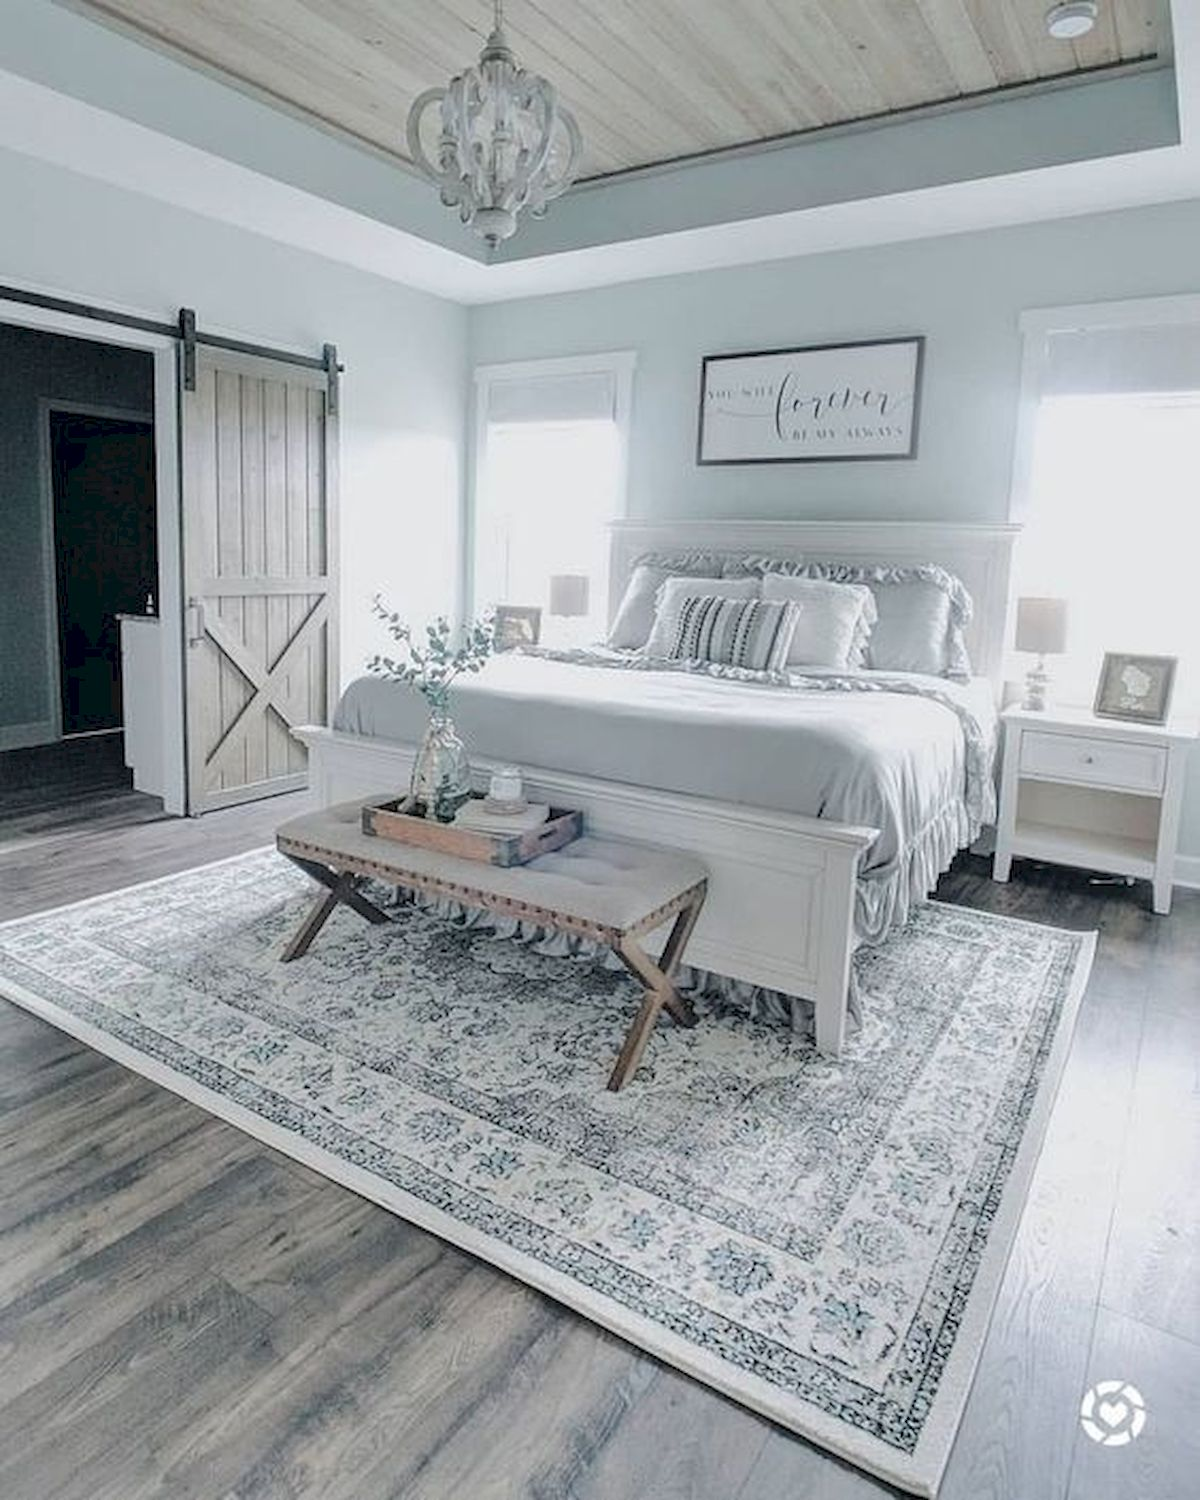 44 Awesome White Master Bedroom Design and Decor Ideas For Any Home Design (23)